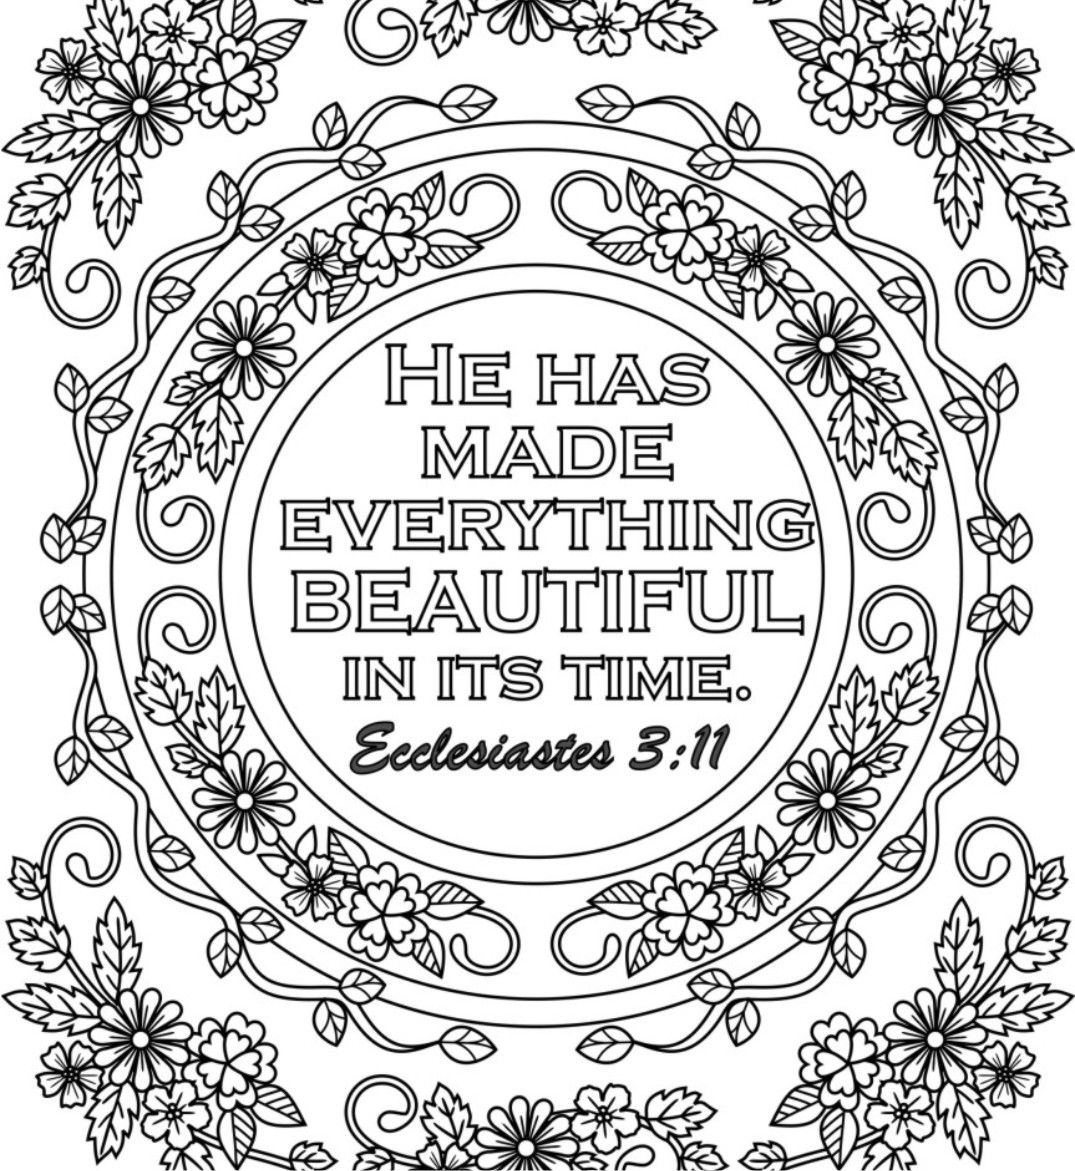 bible verse coloring sheets 11 bible verses to teach kids with printables to color verse sheets bible coloring 1 1